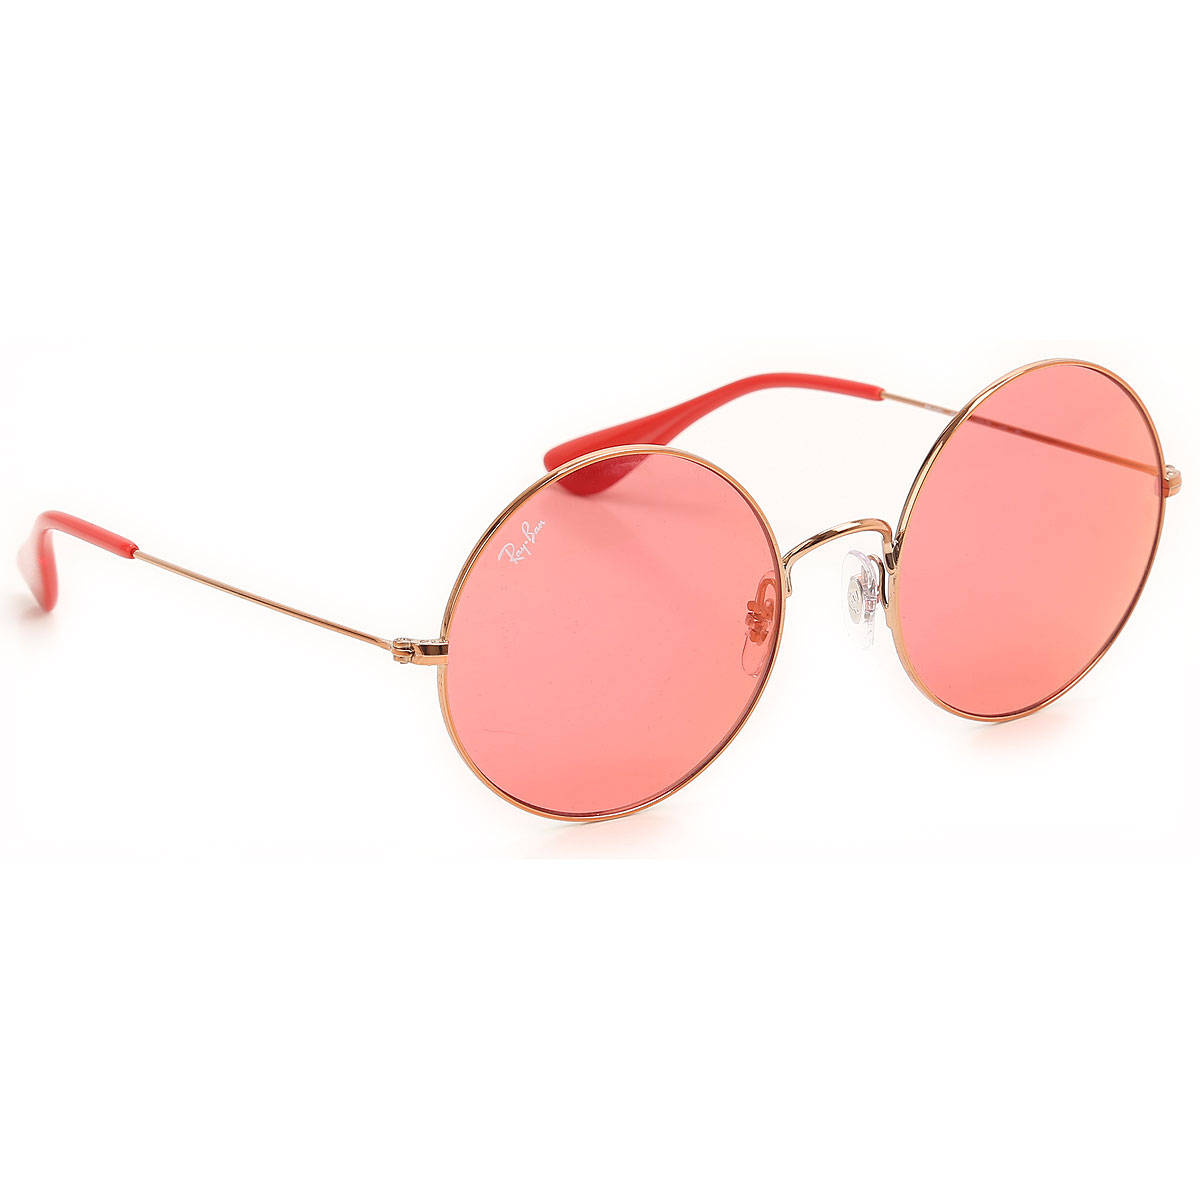 Image of Ray Ban Sunglasses On Sale, Copper, 2017